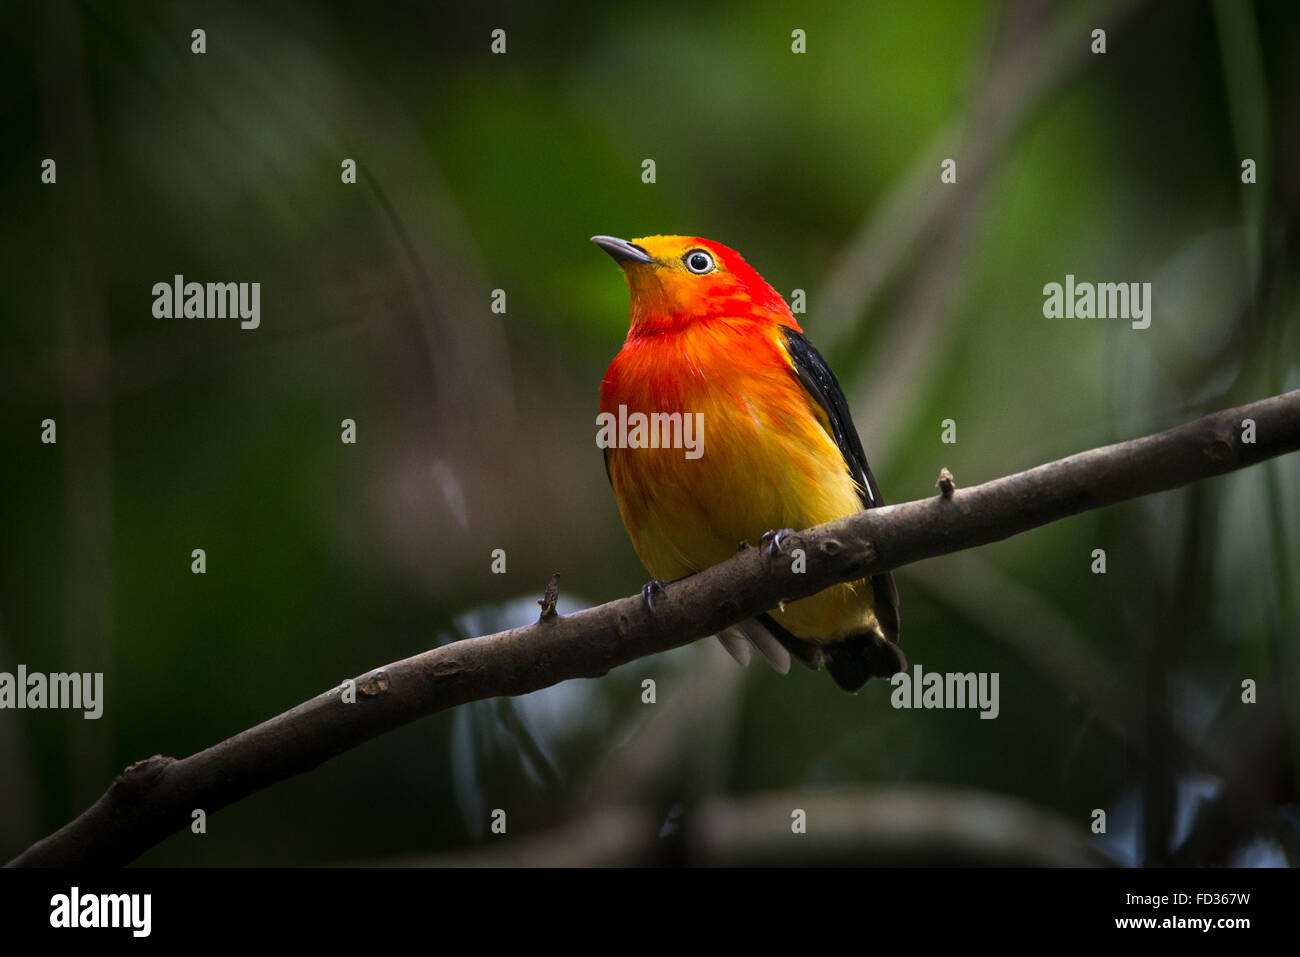 a-band-tailed-manakin-from-the-forests-o